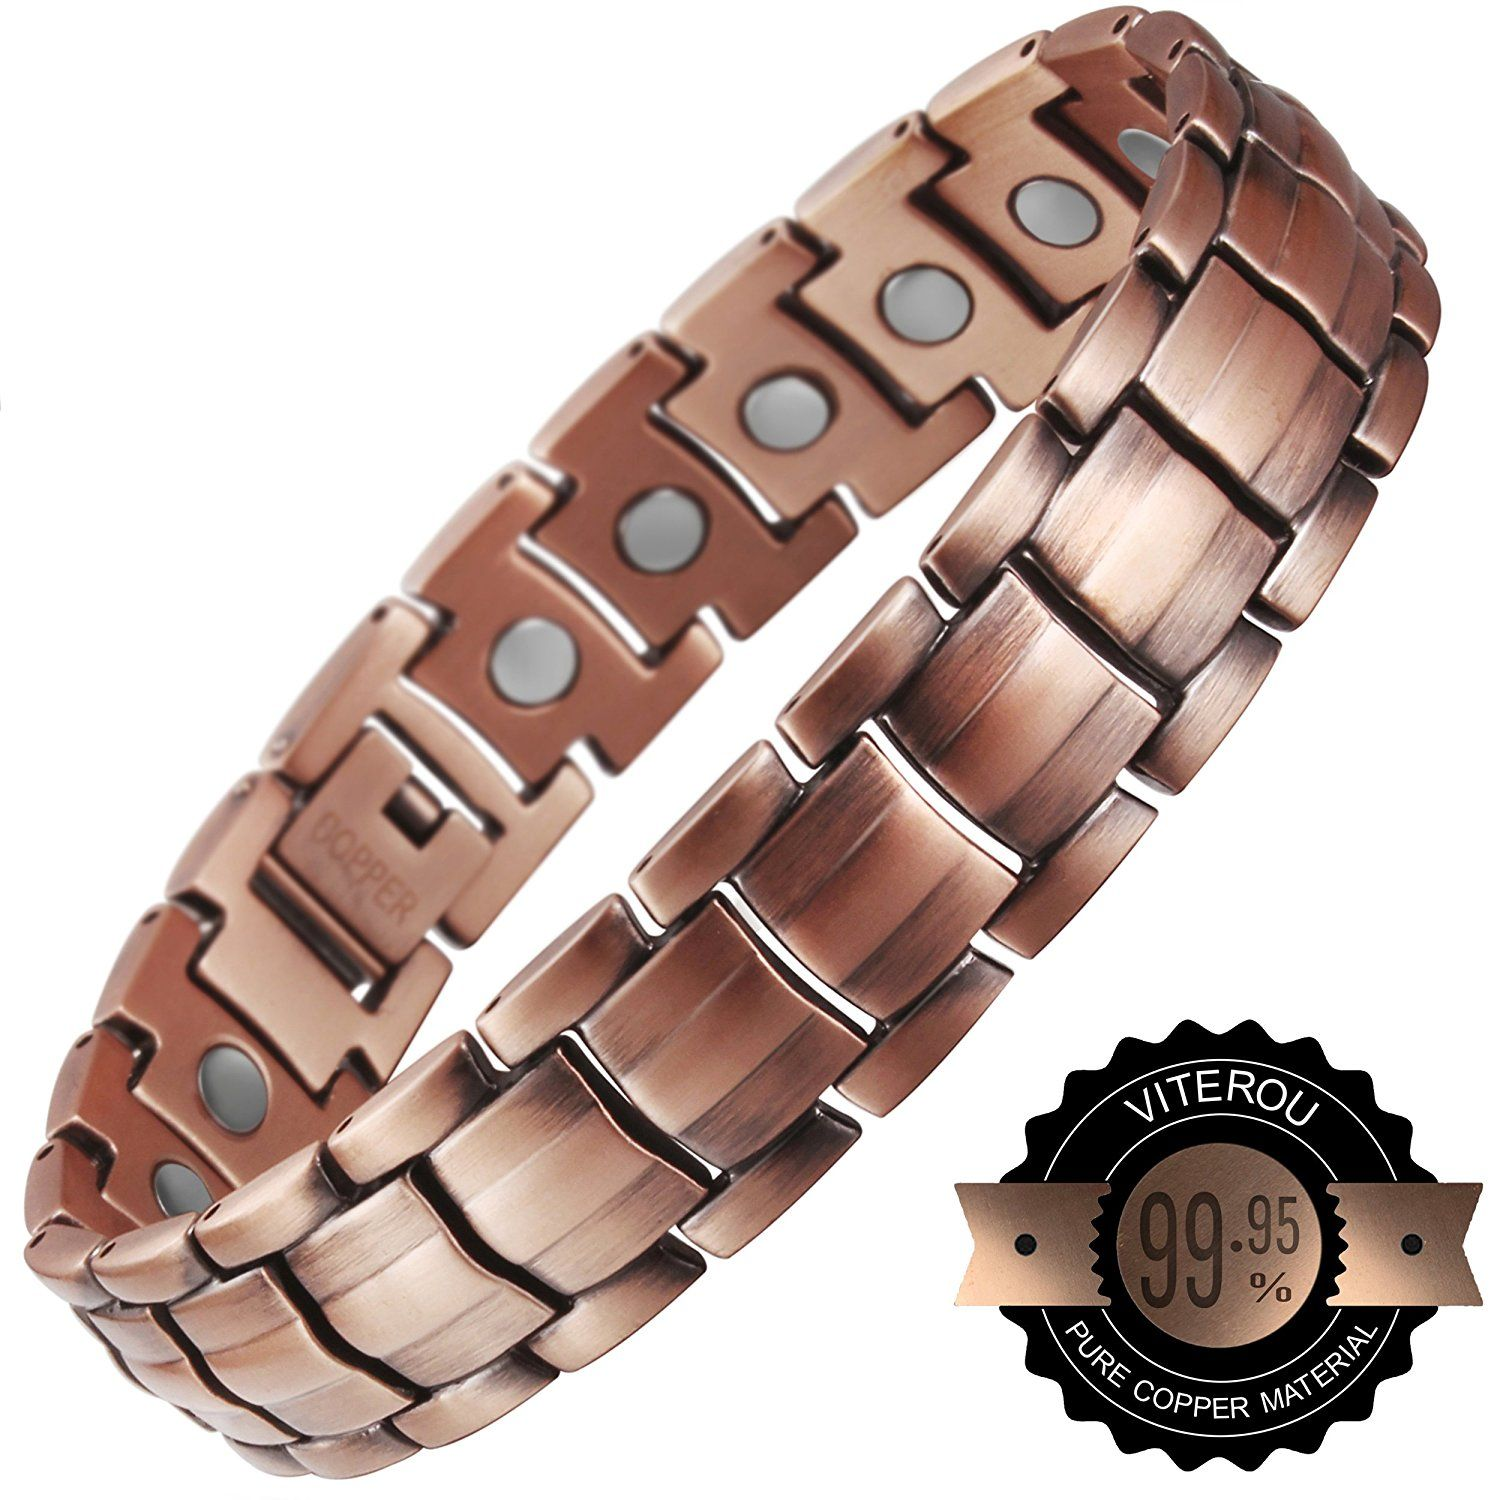 Viterou Mens Magnetic Pure Copper Bracelet With Healing Magnets Pain Relief For Arthritis 3500 Gauss Ca Jewelry